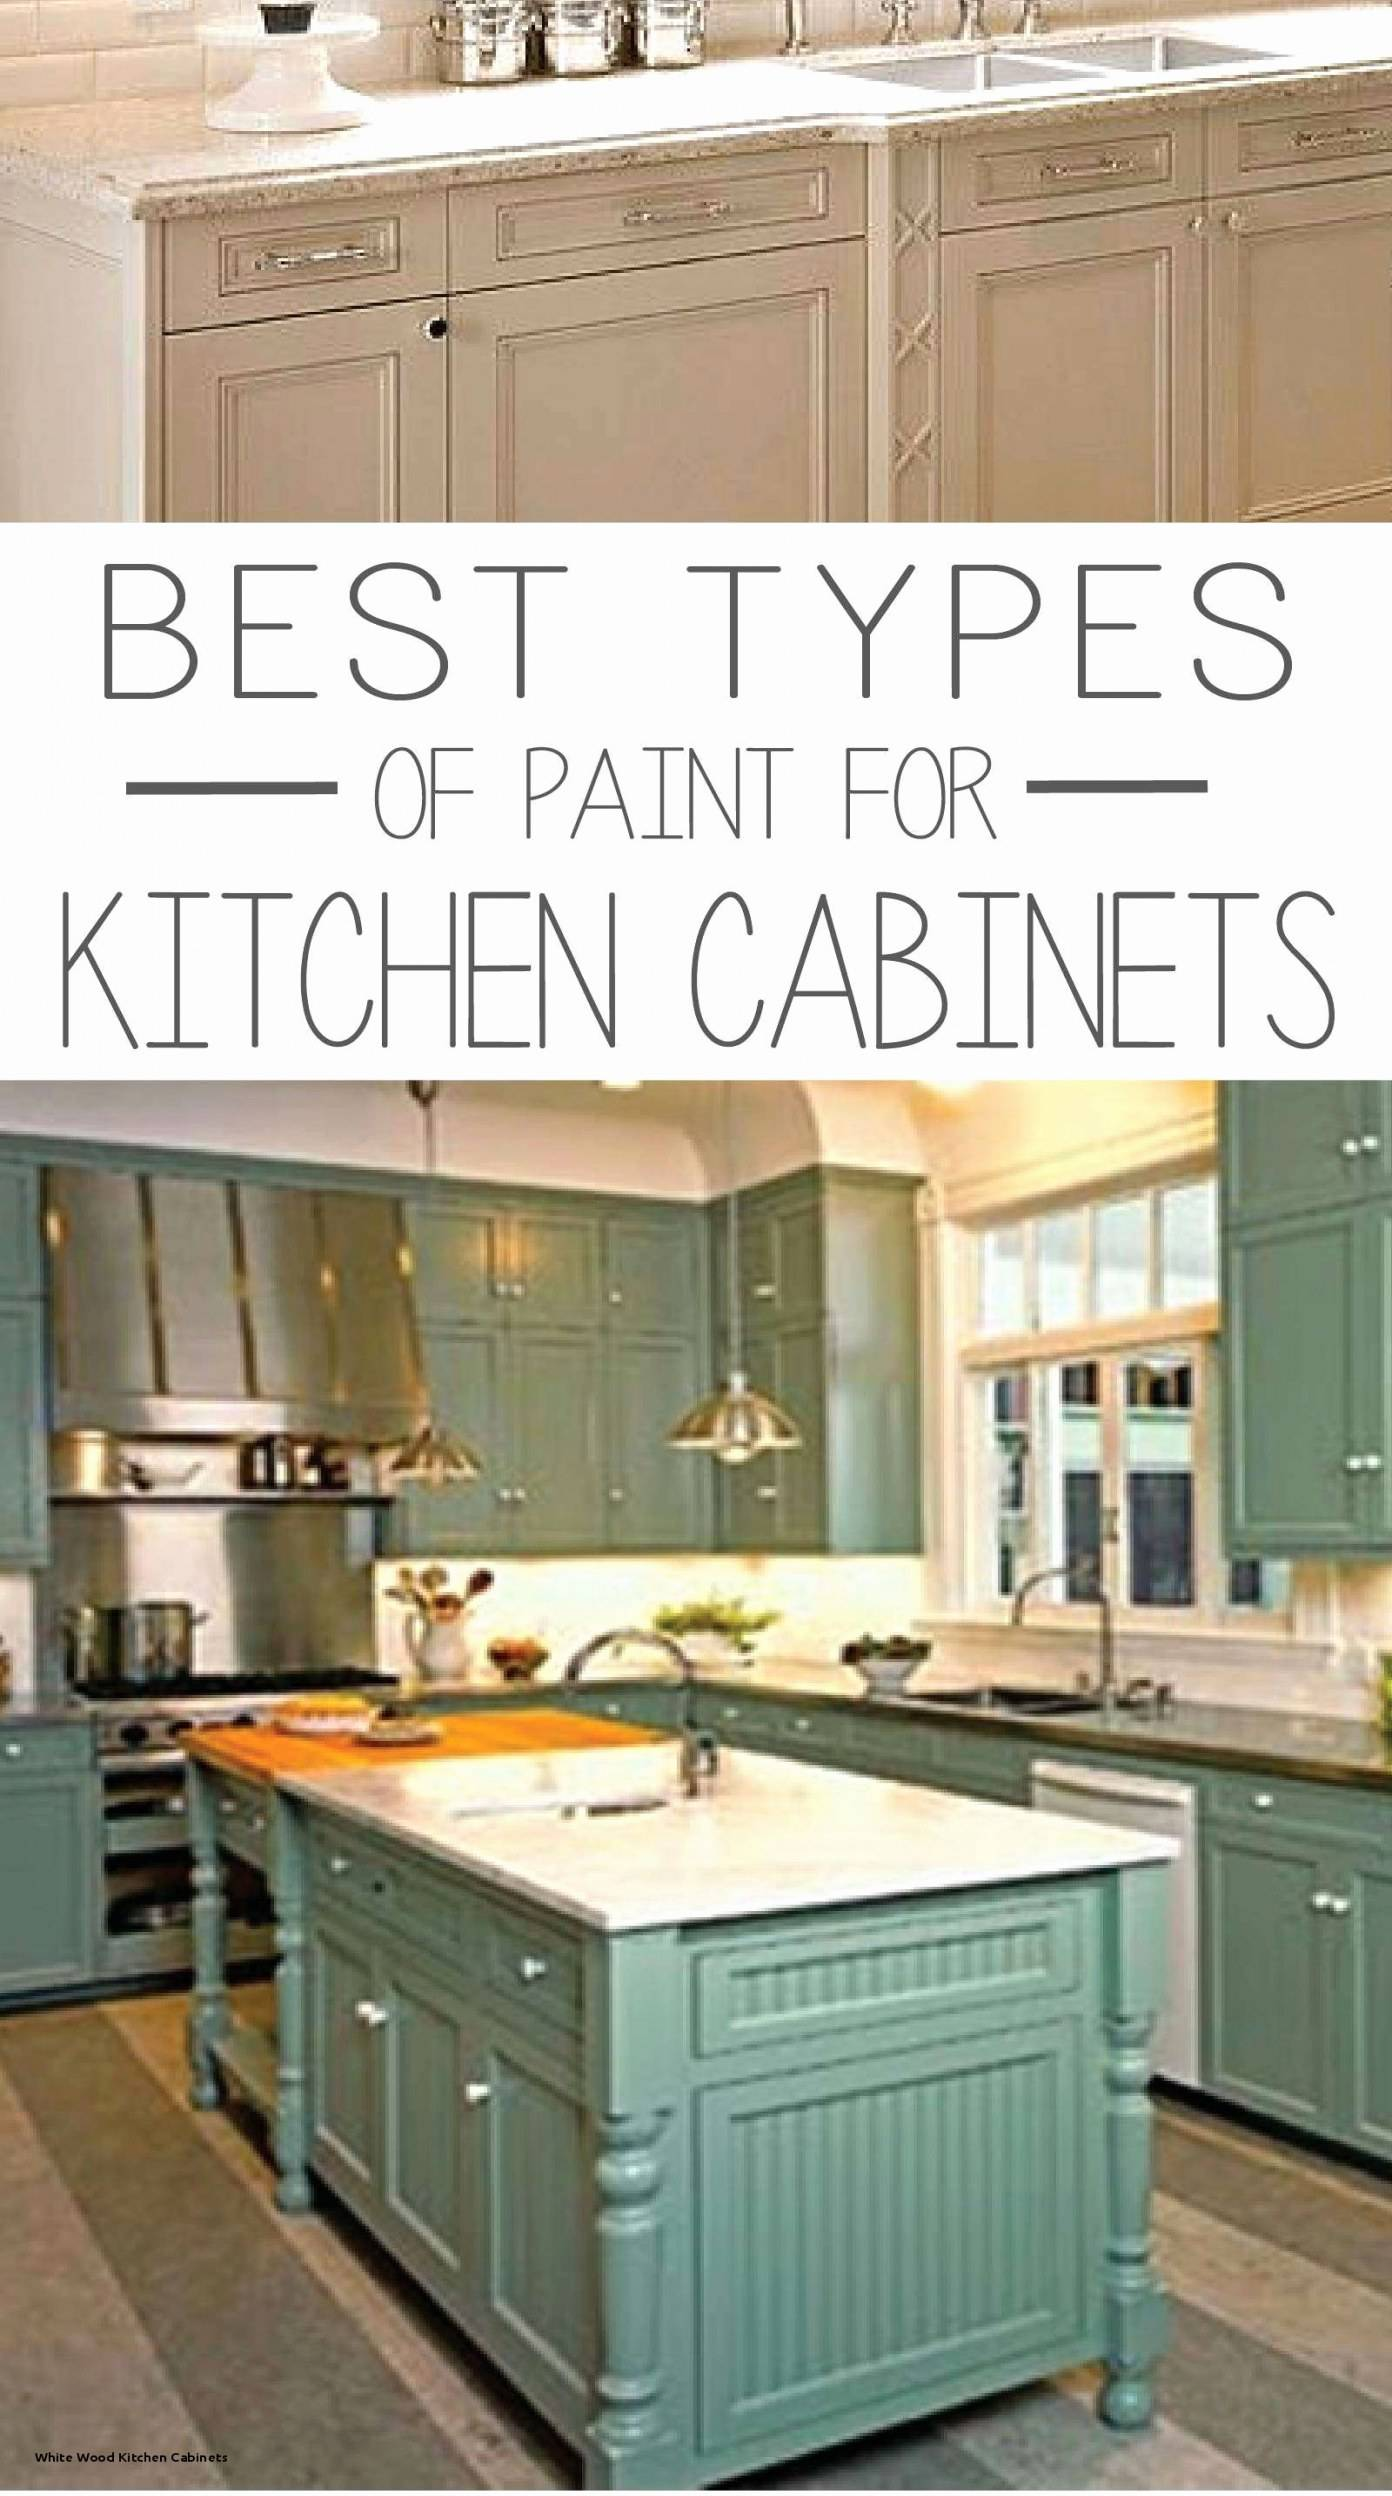 kitchen white cabinets oak kitchen cabinets pickled maple awesome cabinet 0d scheme of kitchen white cabinets